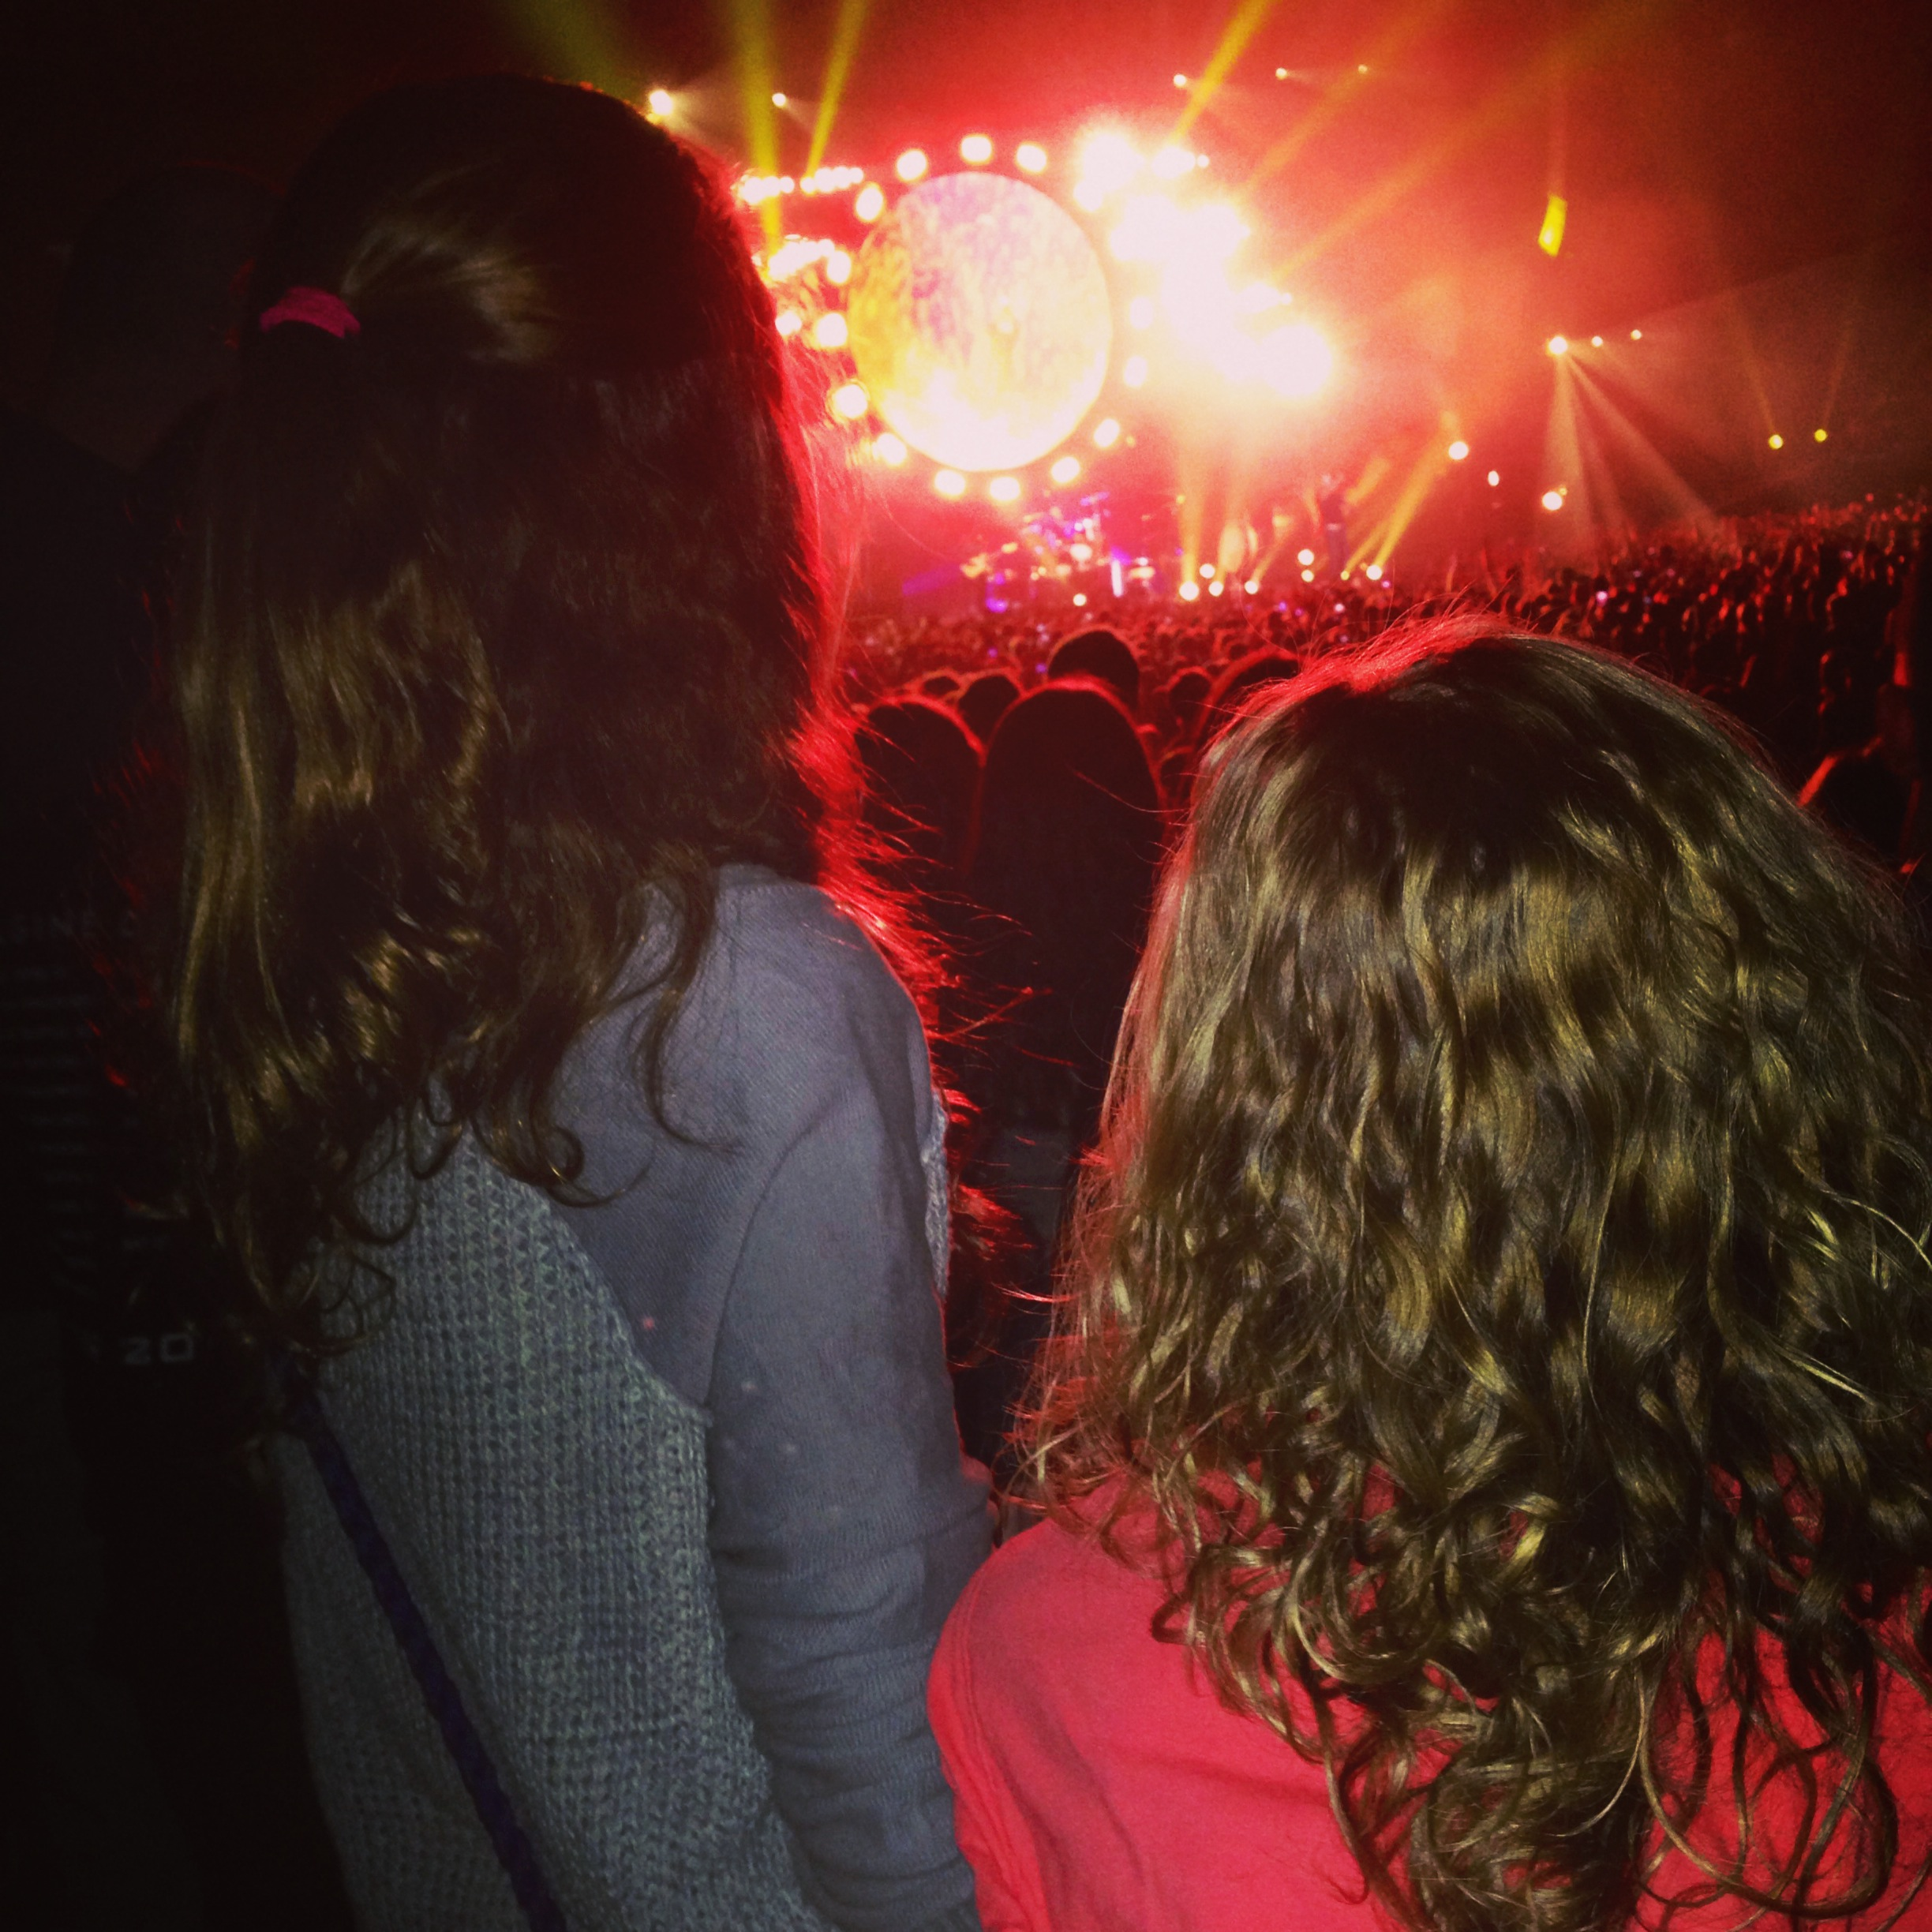 My girl (right) at her first concert with one of her besties: Imagine Dragons @ Allstate Arena